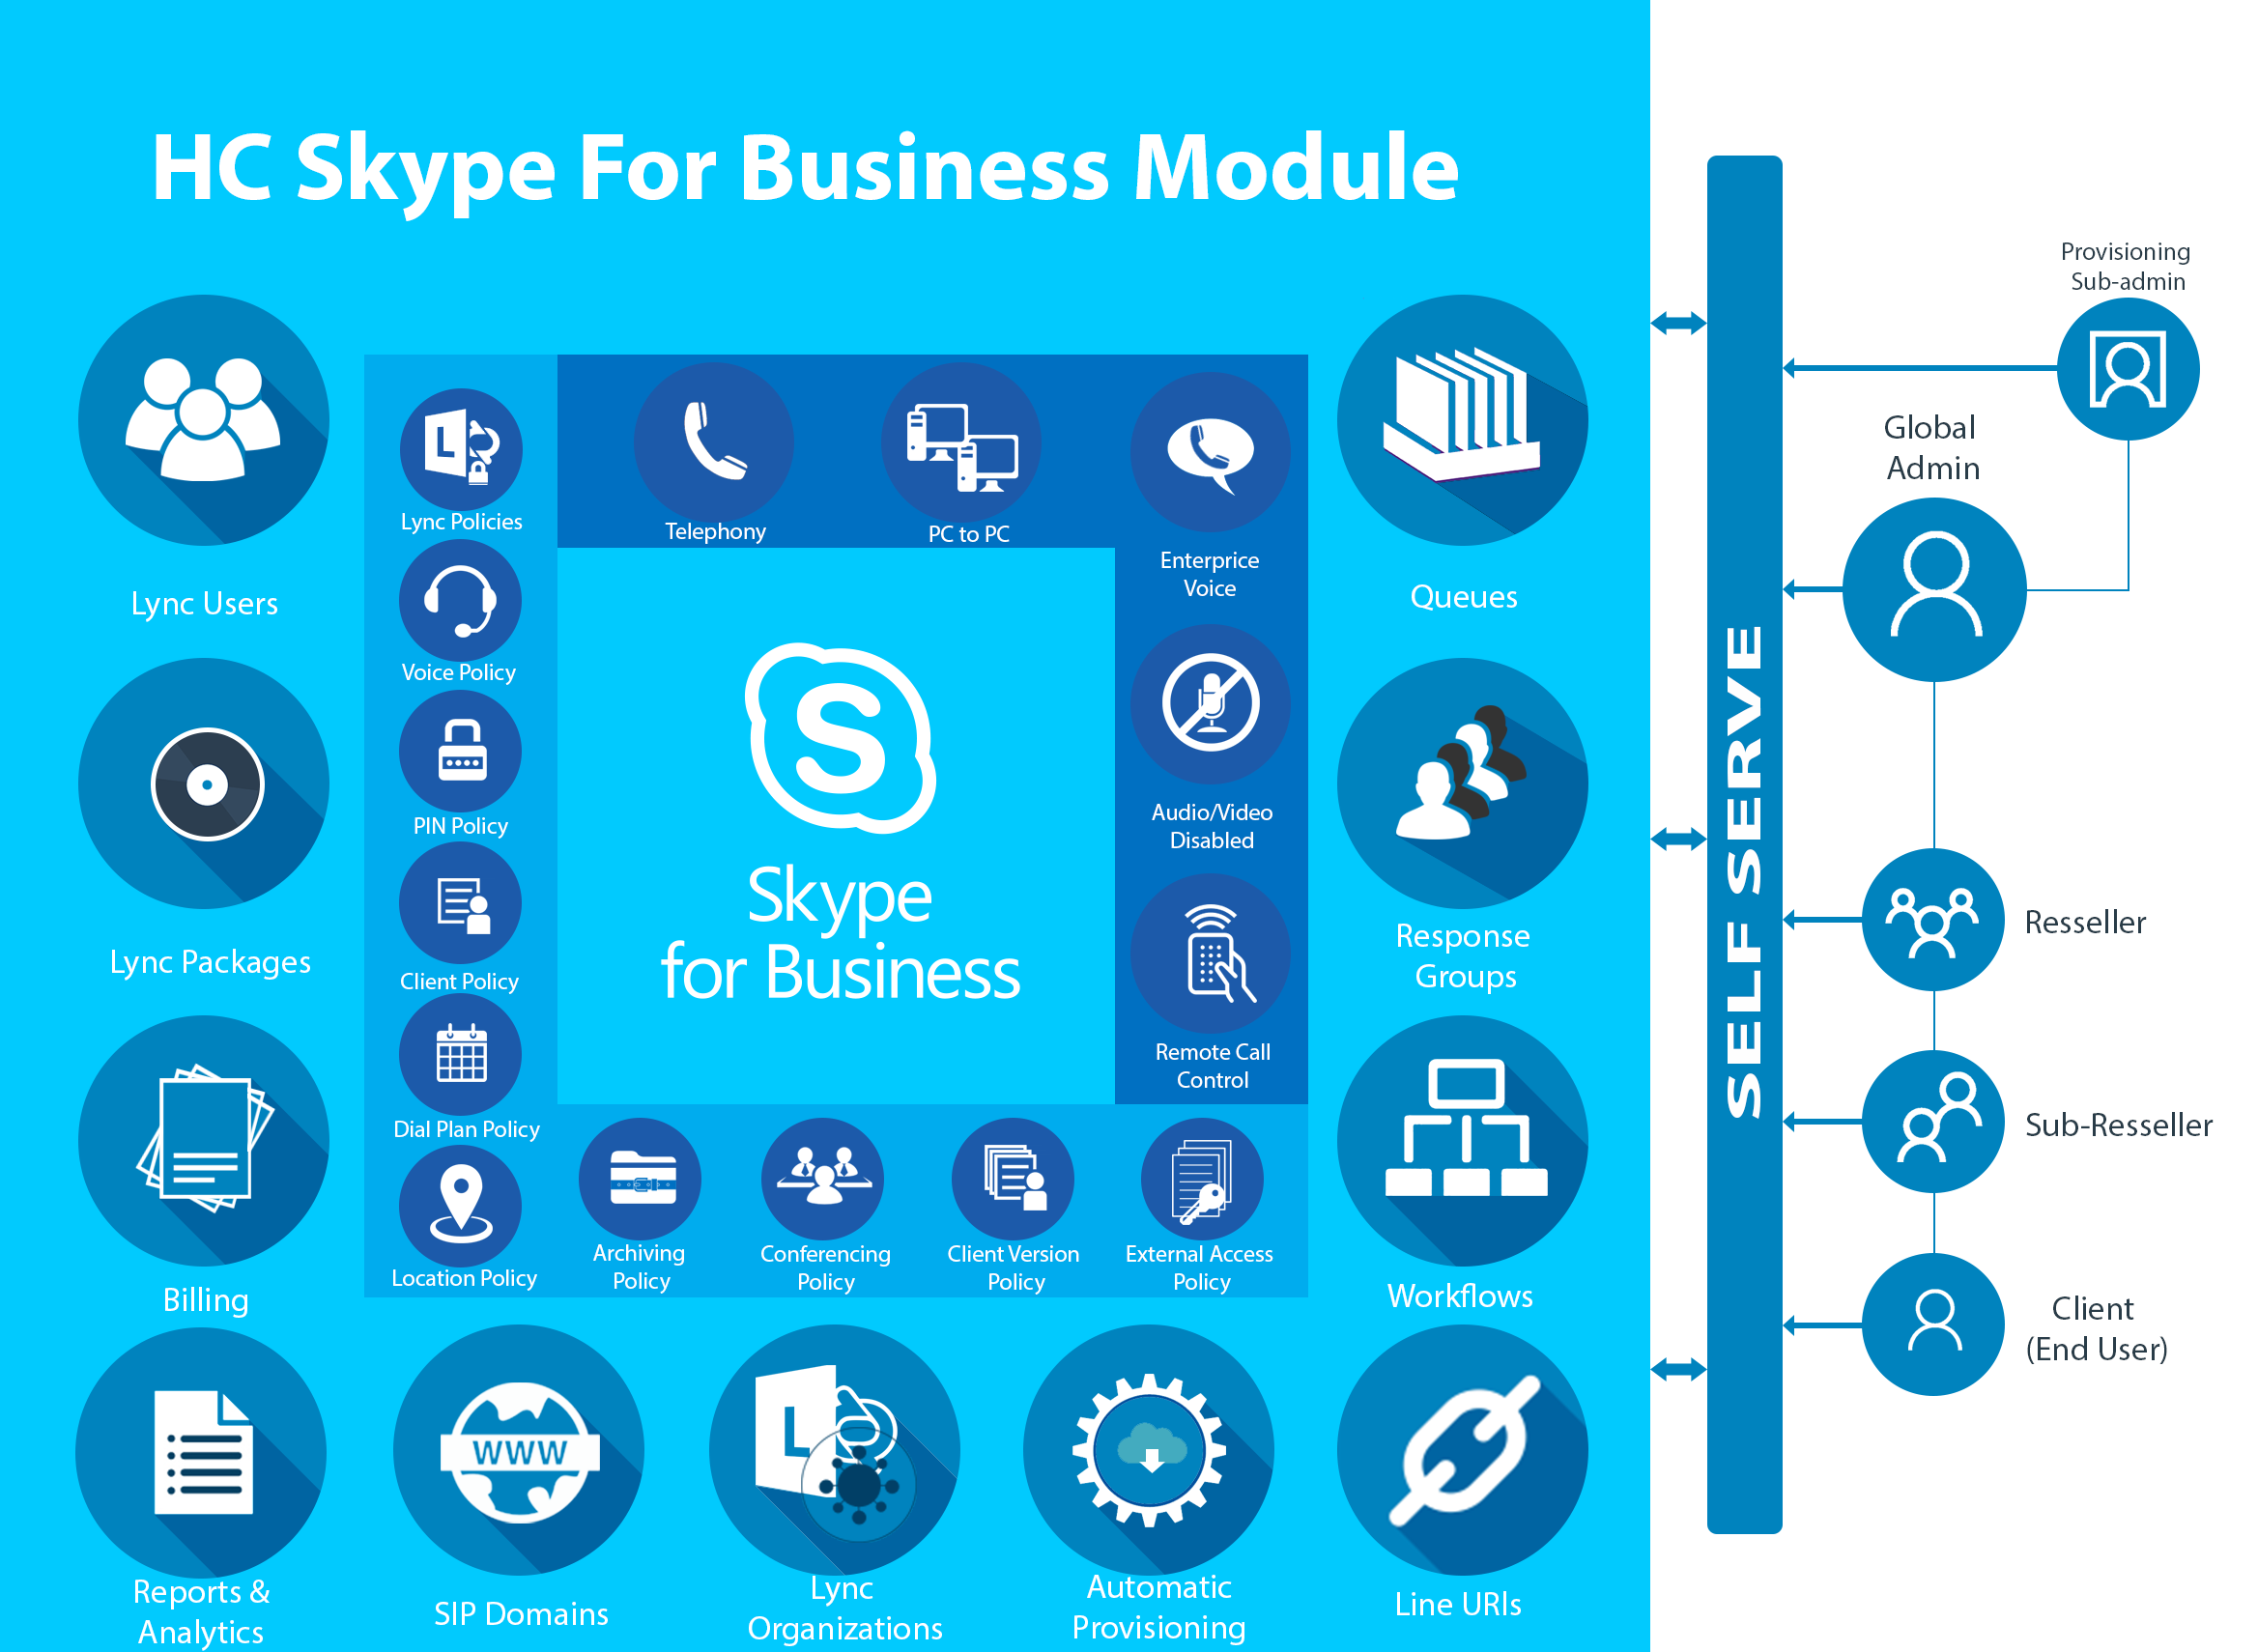 HC Skype for Business module